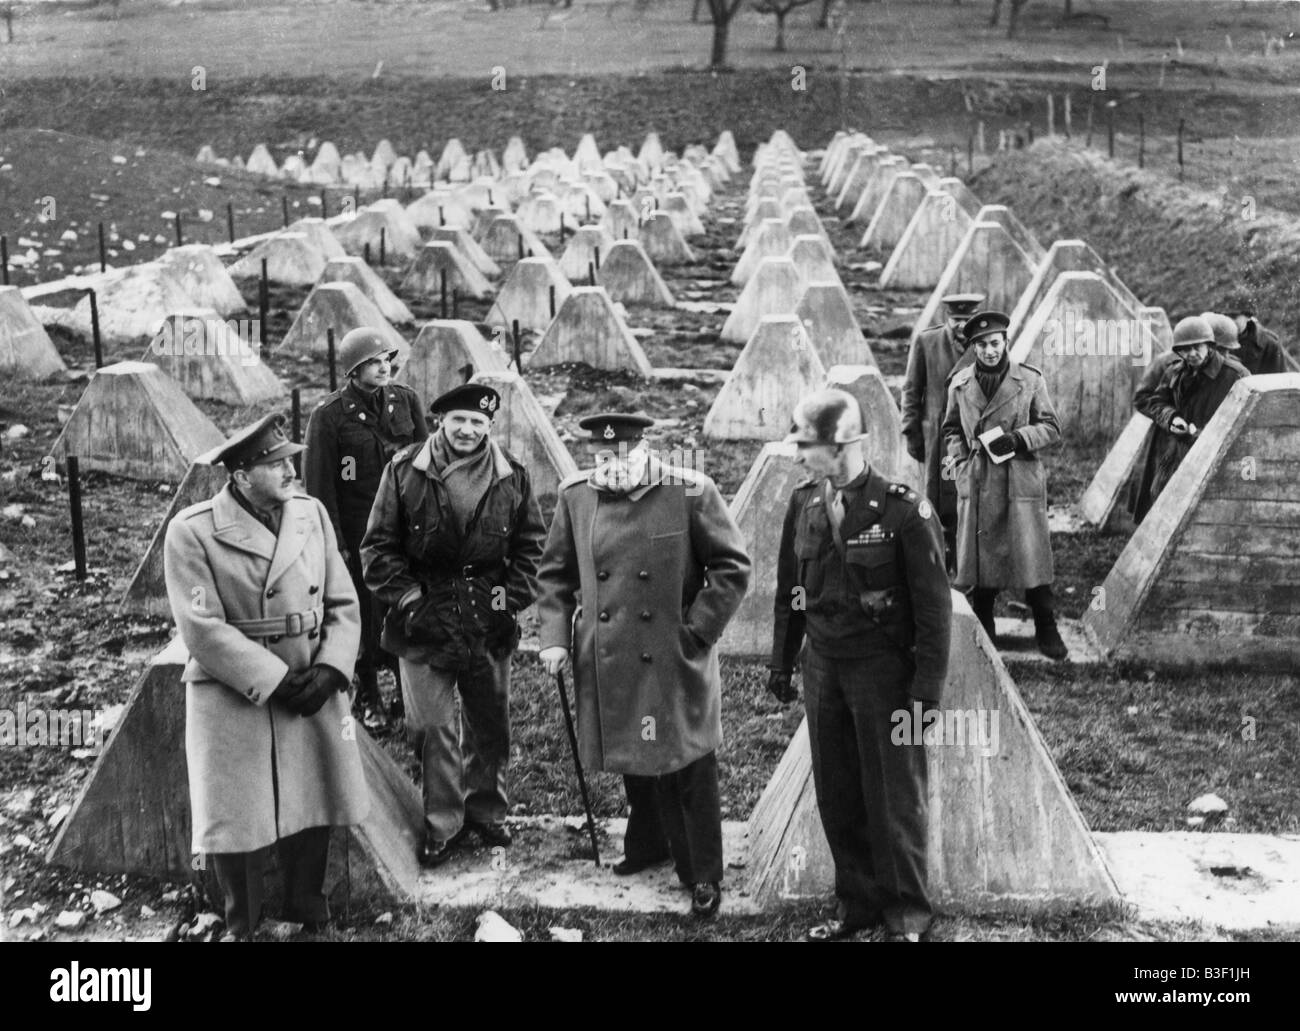 WW2/Churchill at Siegfried Line/1945. - Stock Image